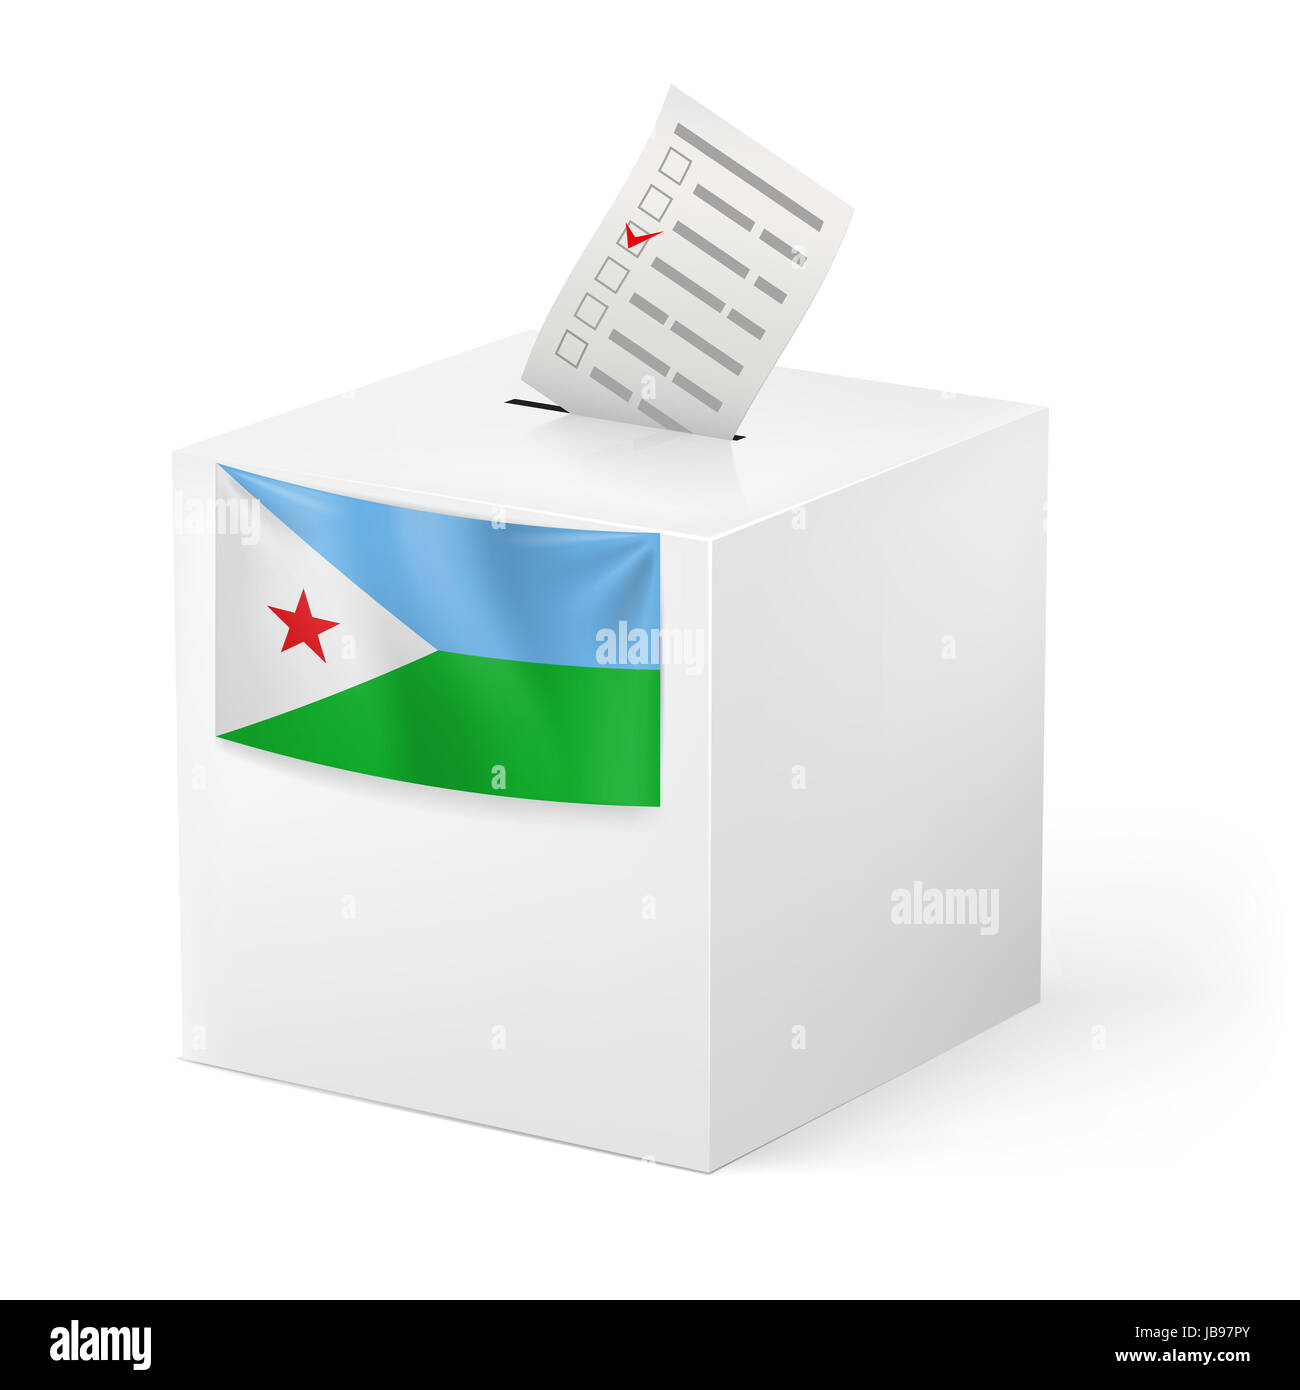 Election in Djibouti: ballot box with voting paper on white background - Stock Image